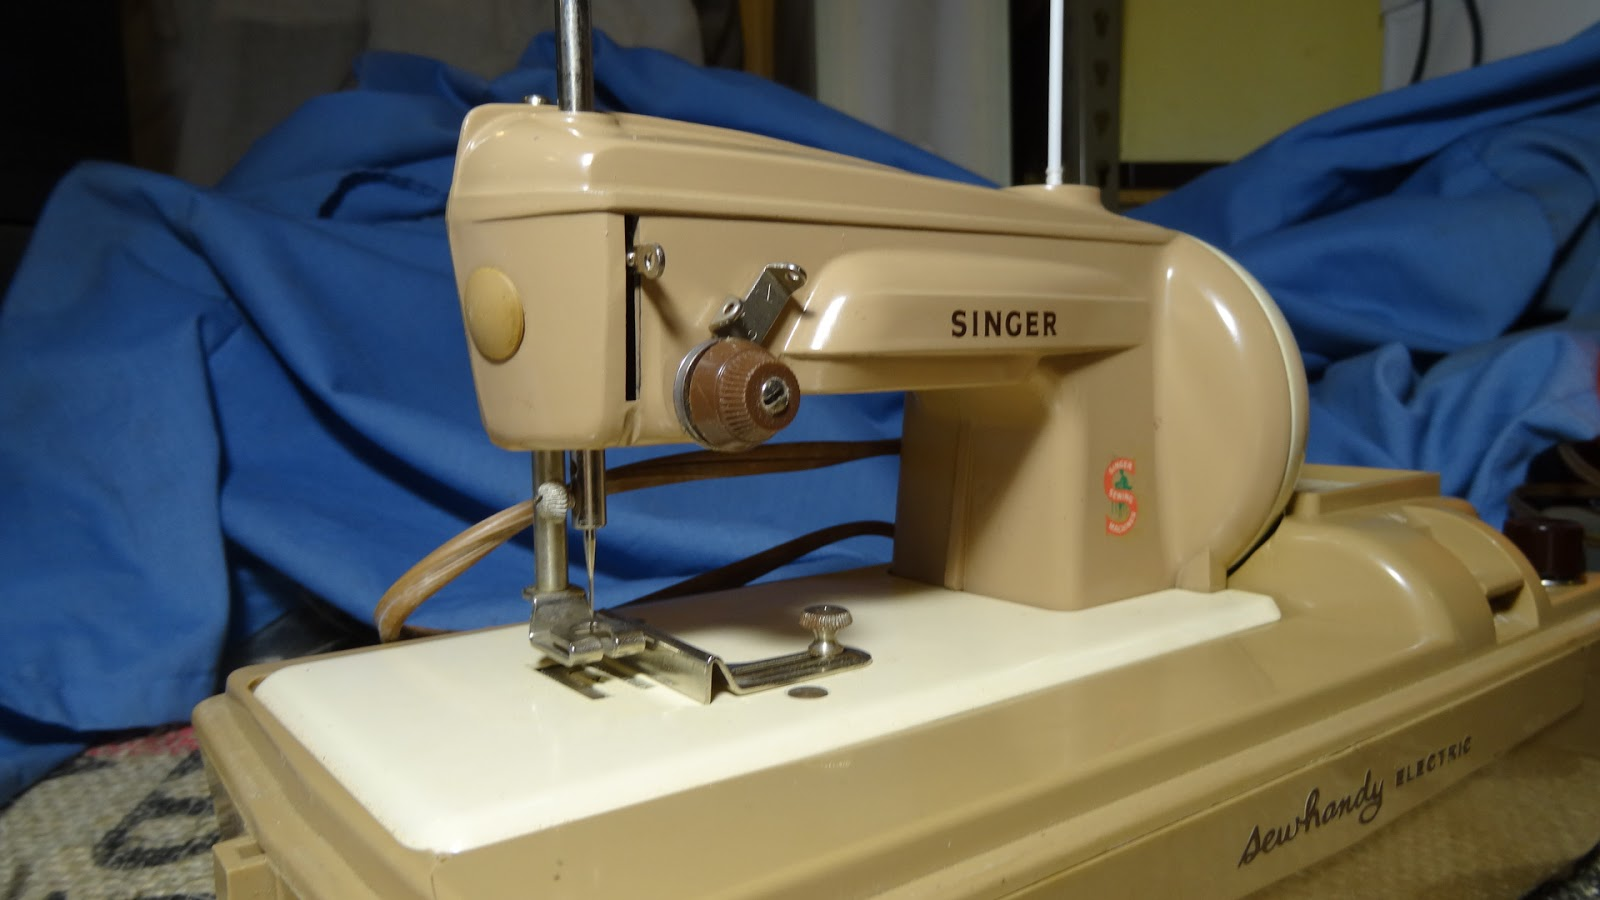 Singer 648 Sewing Machine Threading Diagram Nut Sewhandy Electric 1600x900